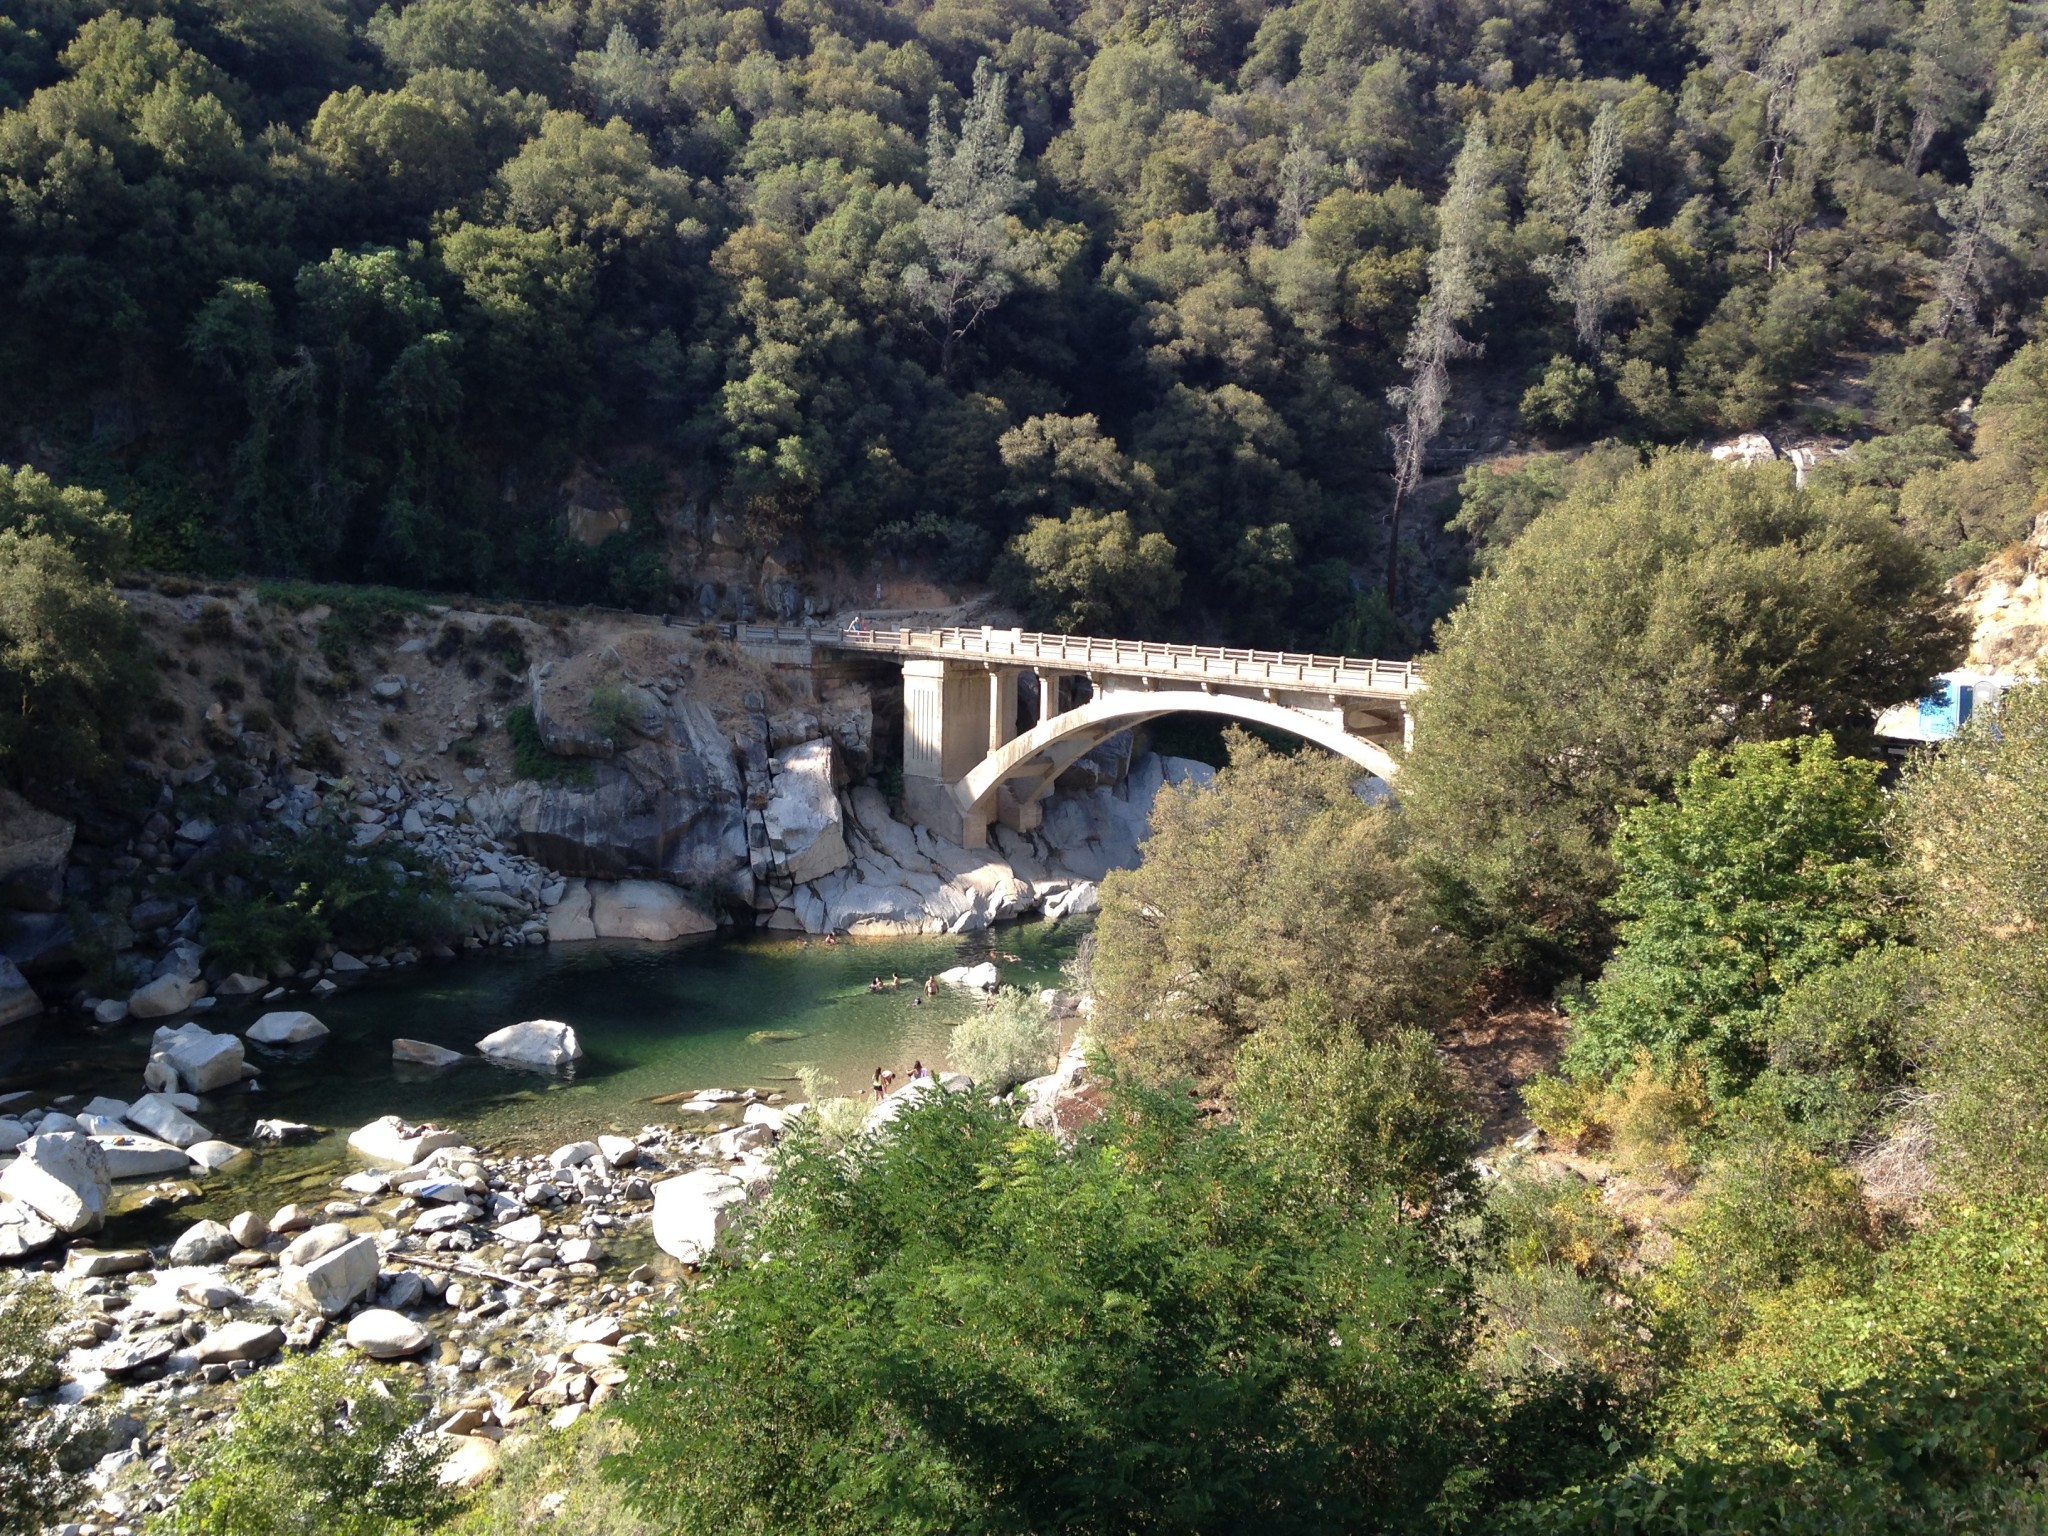 Bridge over the Yuba